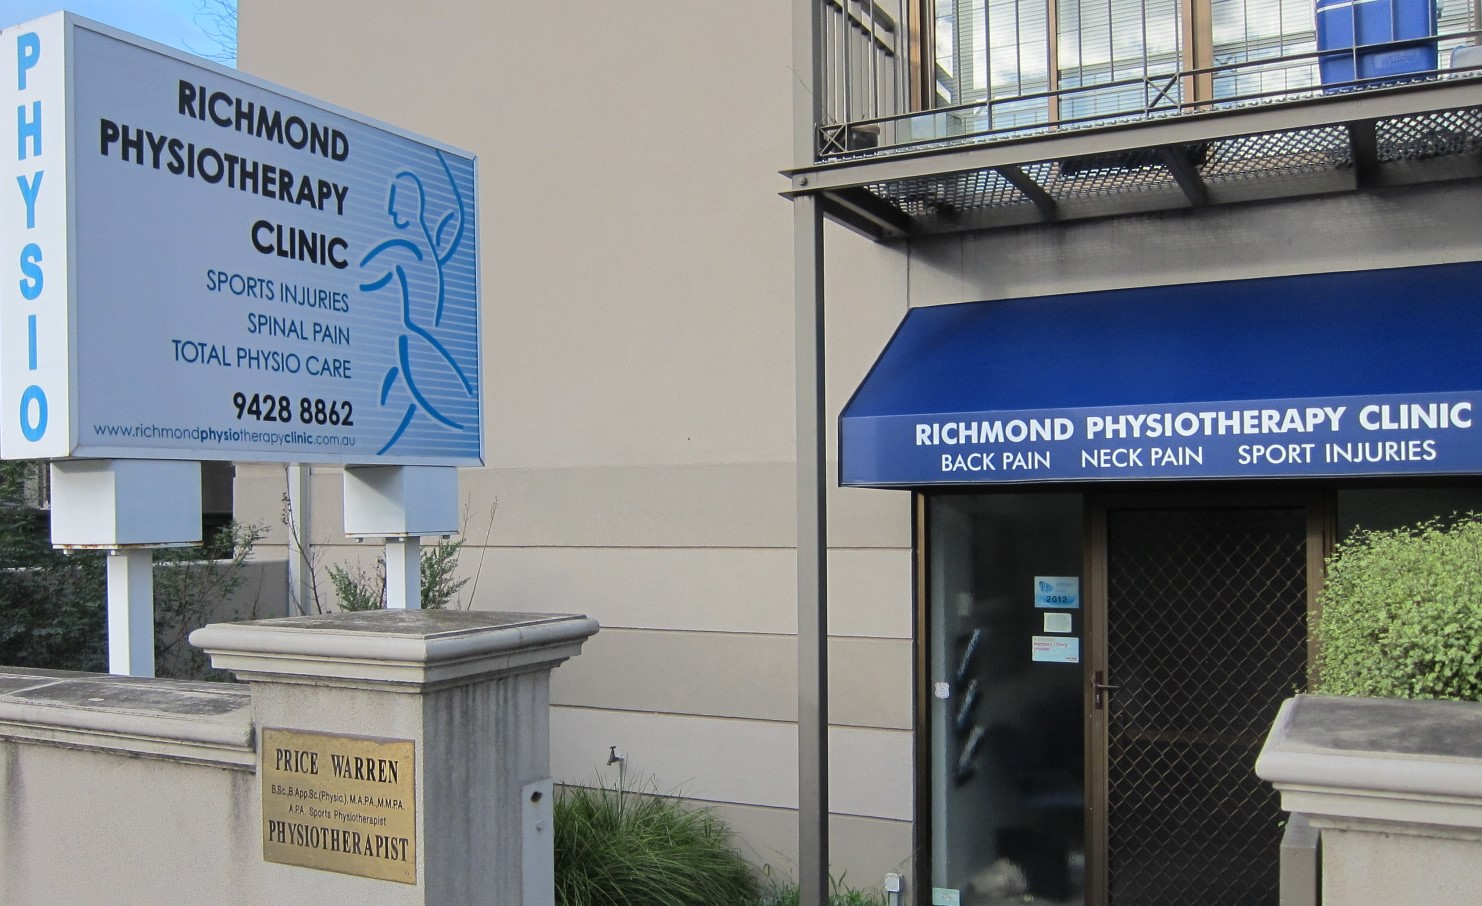 Richmond Physiotherapy Clinic - entrance